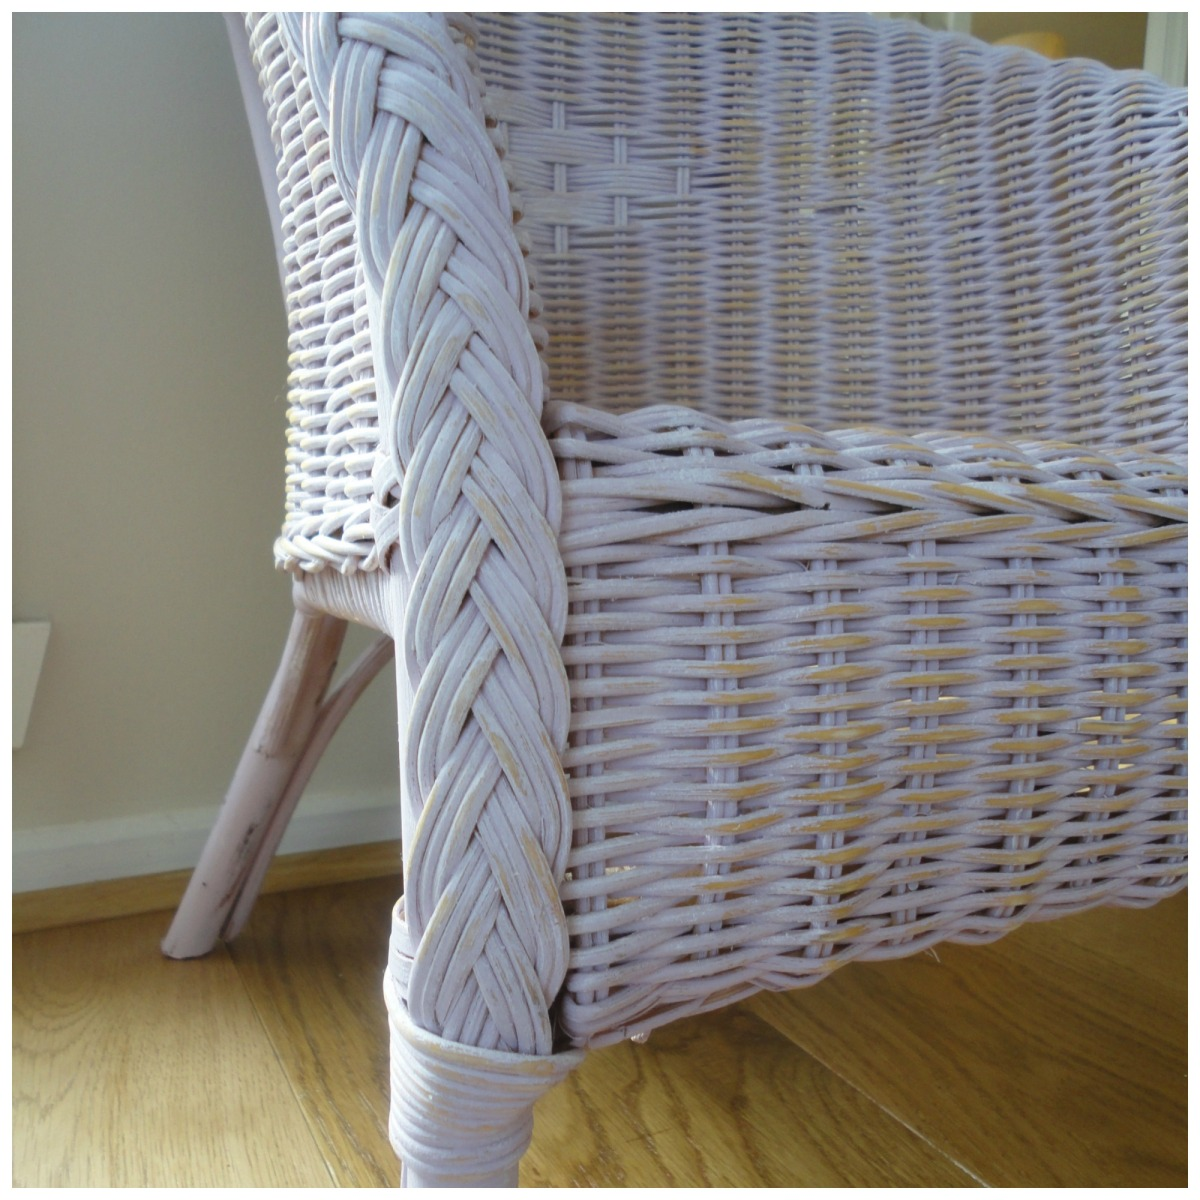 How To Paint A Wicker Chair With Chalk Paint « HONEY & ROSES